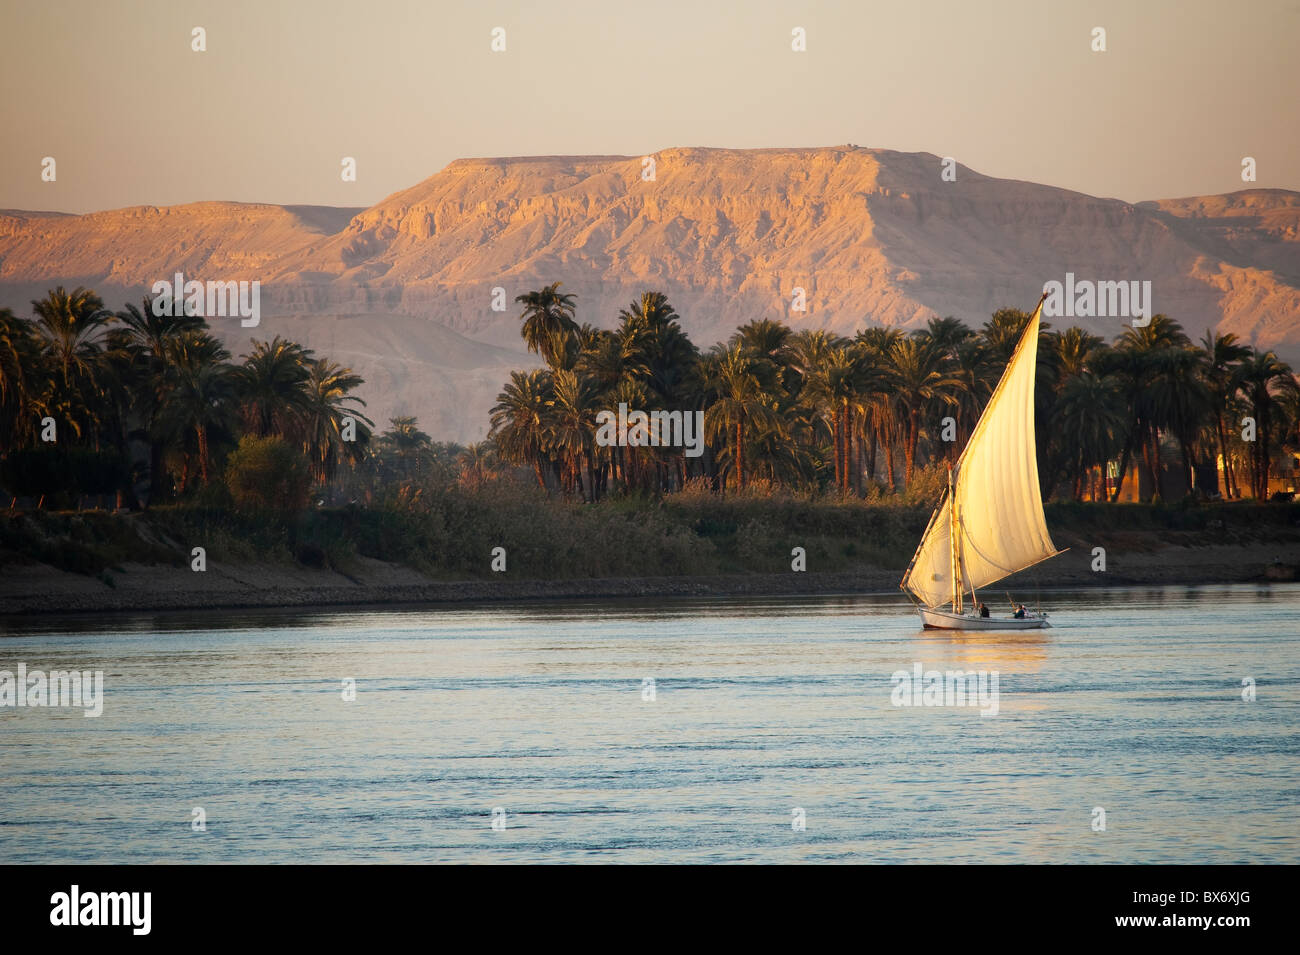 A stunning and beautiful image of a traditional Egyptian sail boat called a felucca on the Nile at sunset with mountains - Stock Image